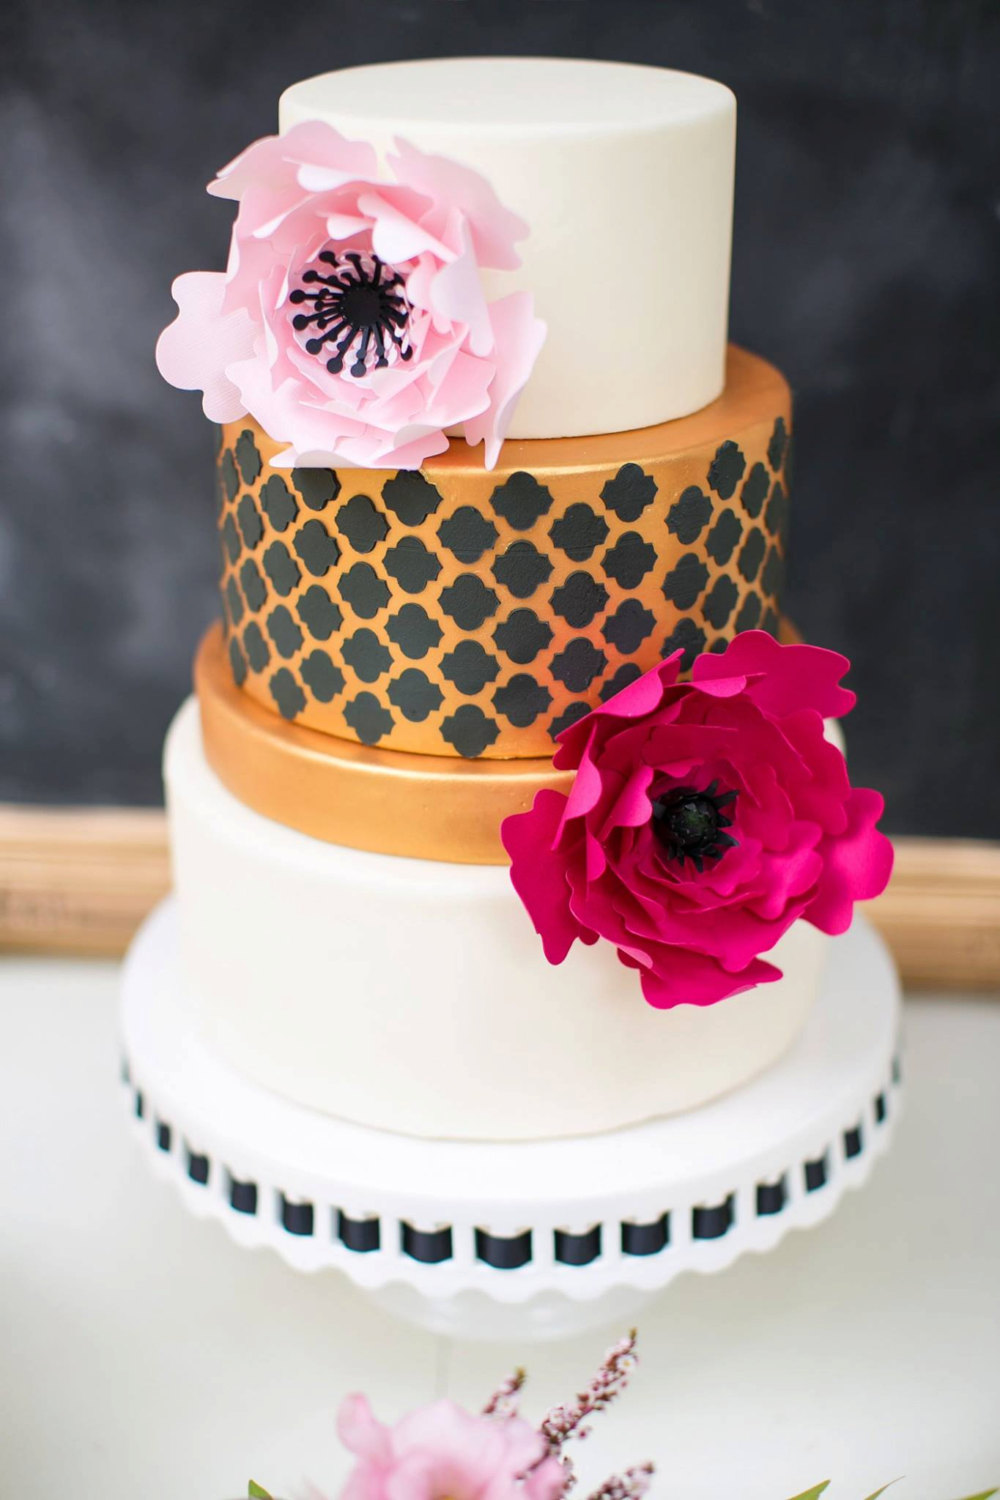 where to buy a cake flower topper